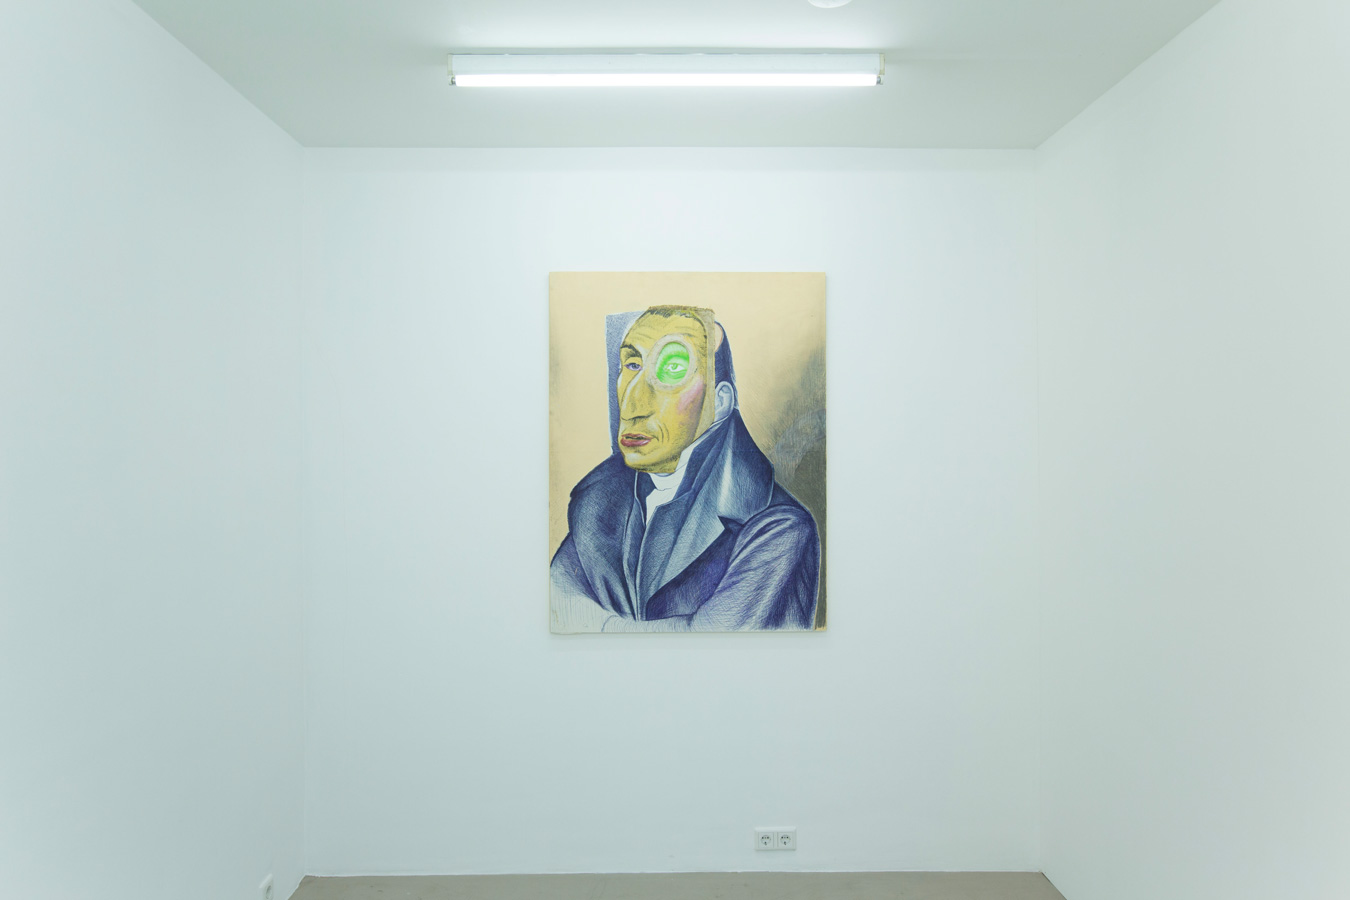 Ornis-A.-Gallery---Benoit-Hermans---Recent-works-exhibition-view-3